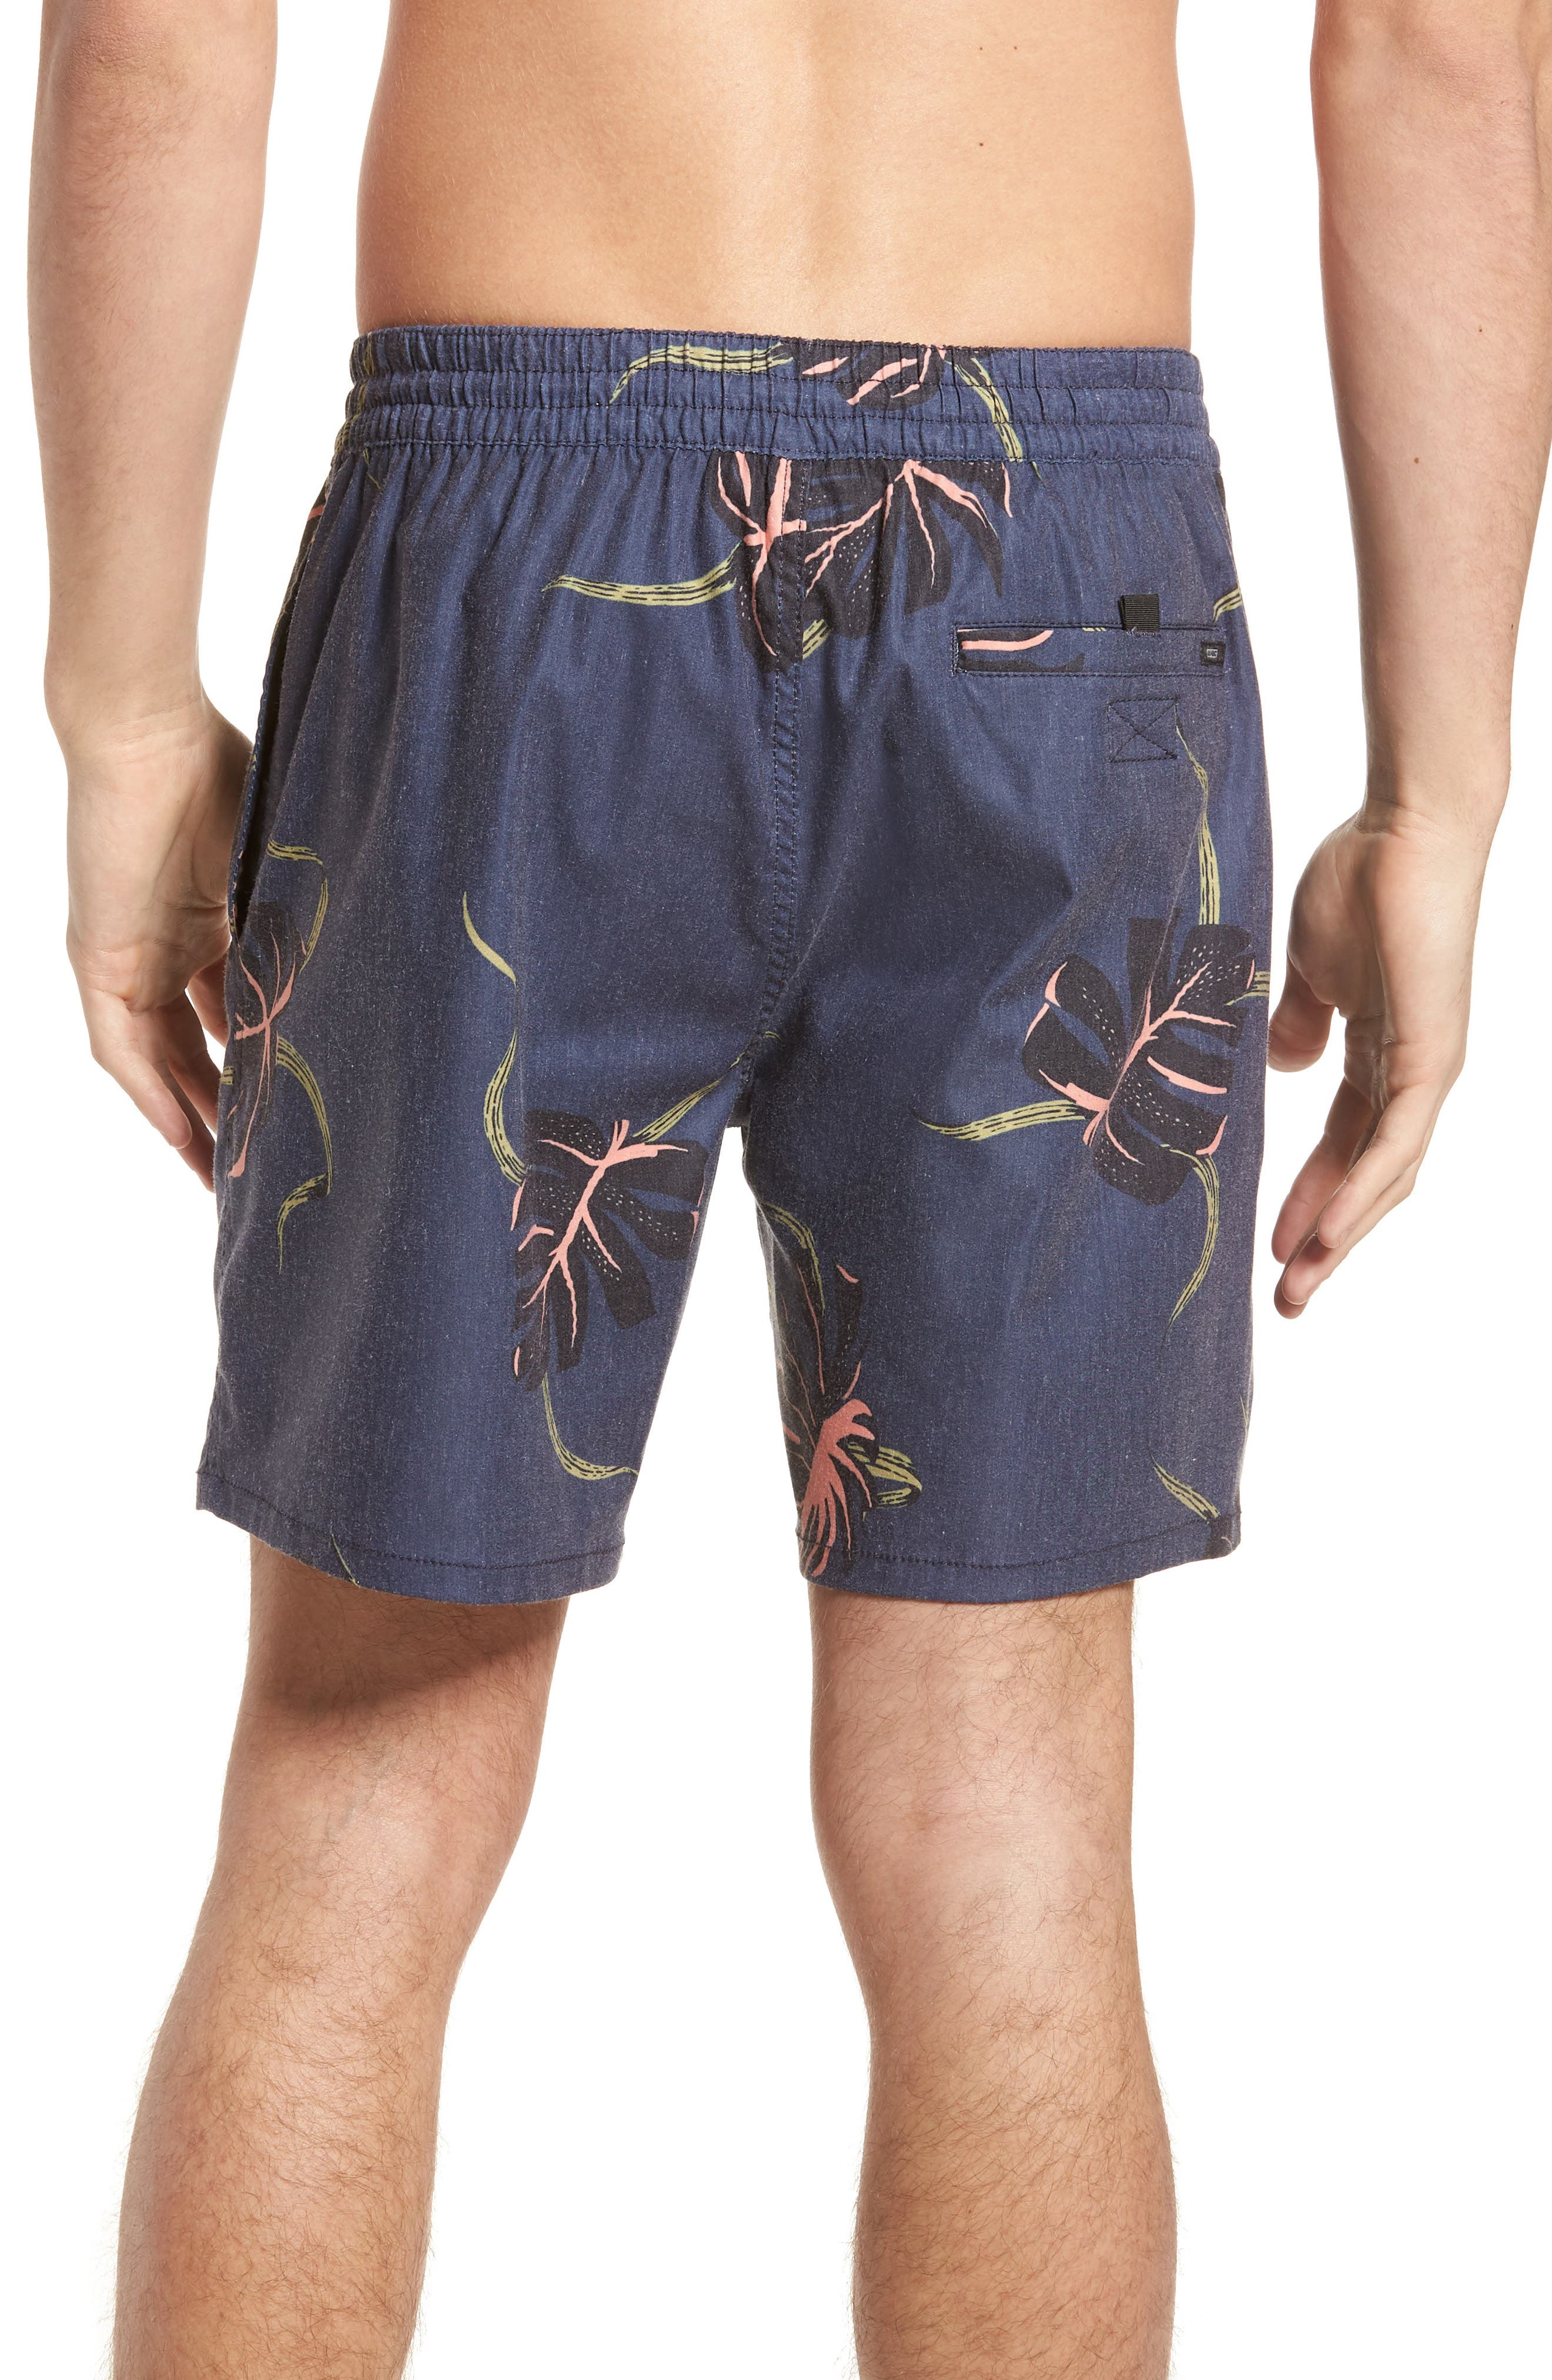 Pointer Pool Shorts,                             Alternate thumbnail 2, color,                             Moonlight Blue